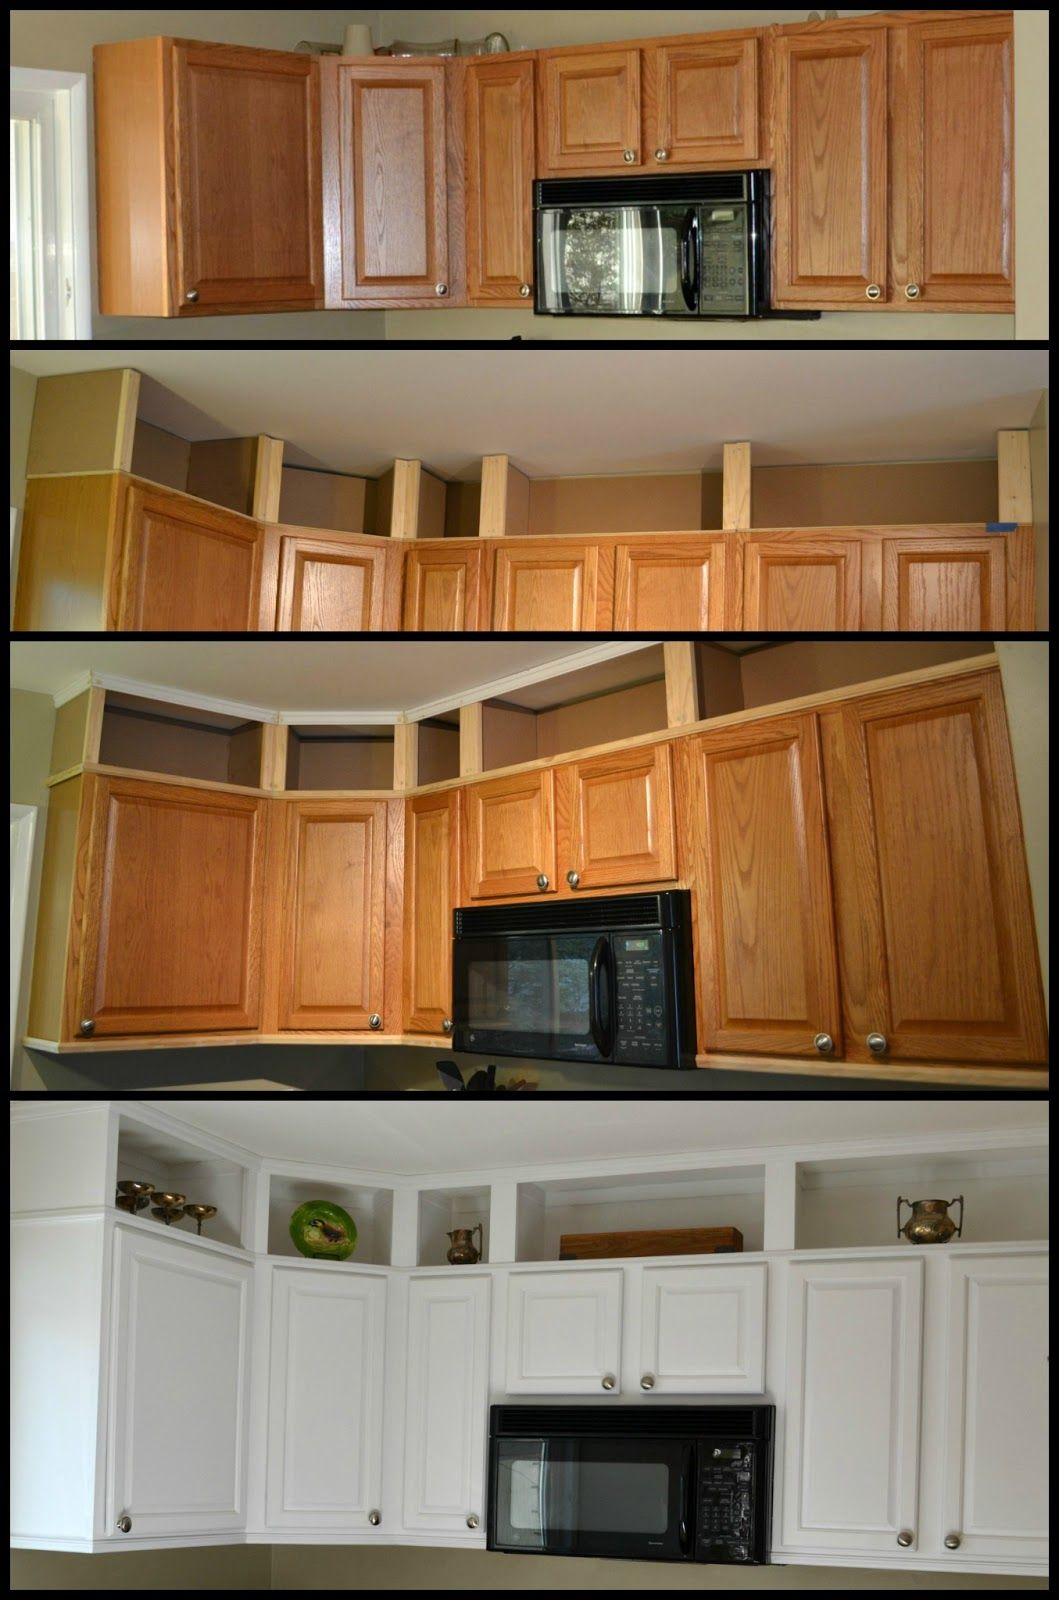 Diy Extend Kitchen Cabinets I Did It I Finished Painting The Kitchen Cabinets And It